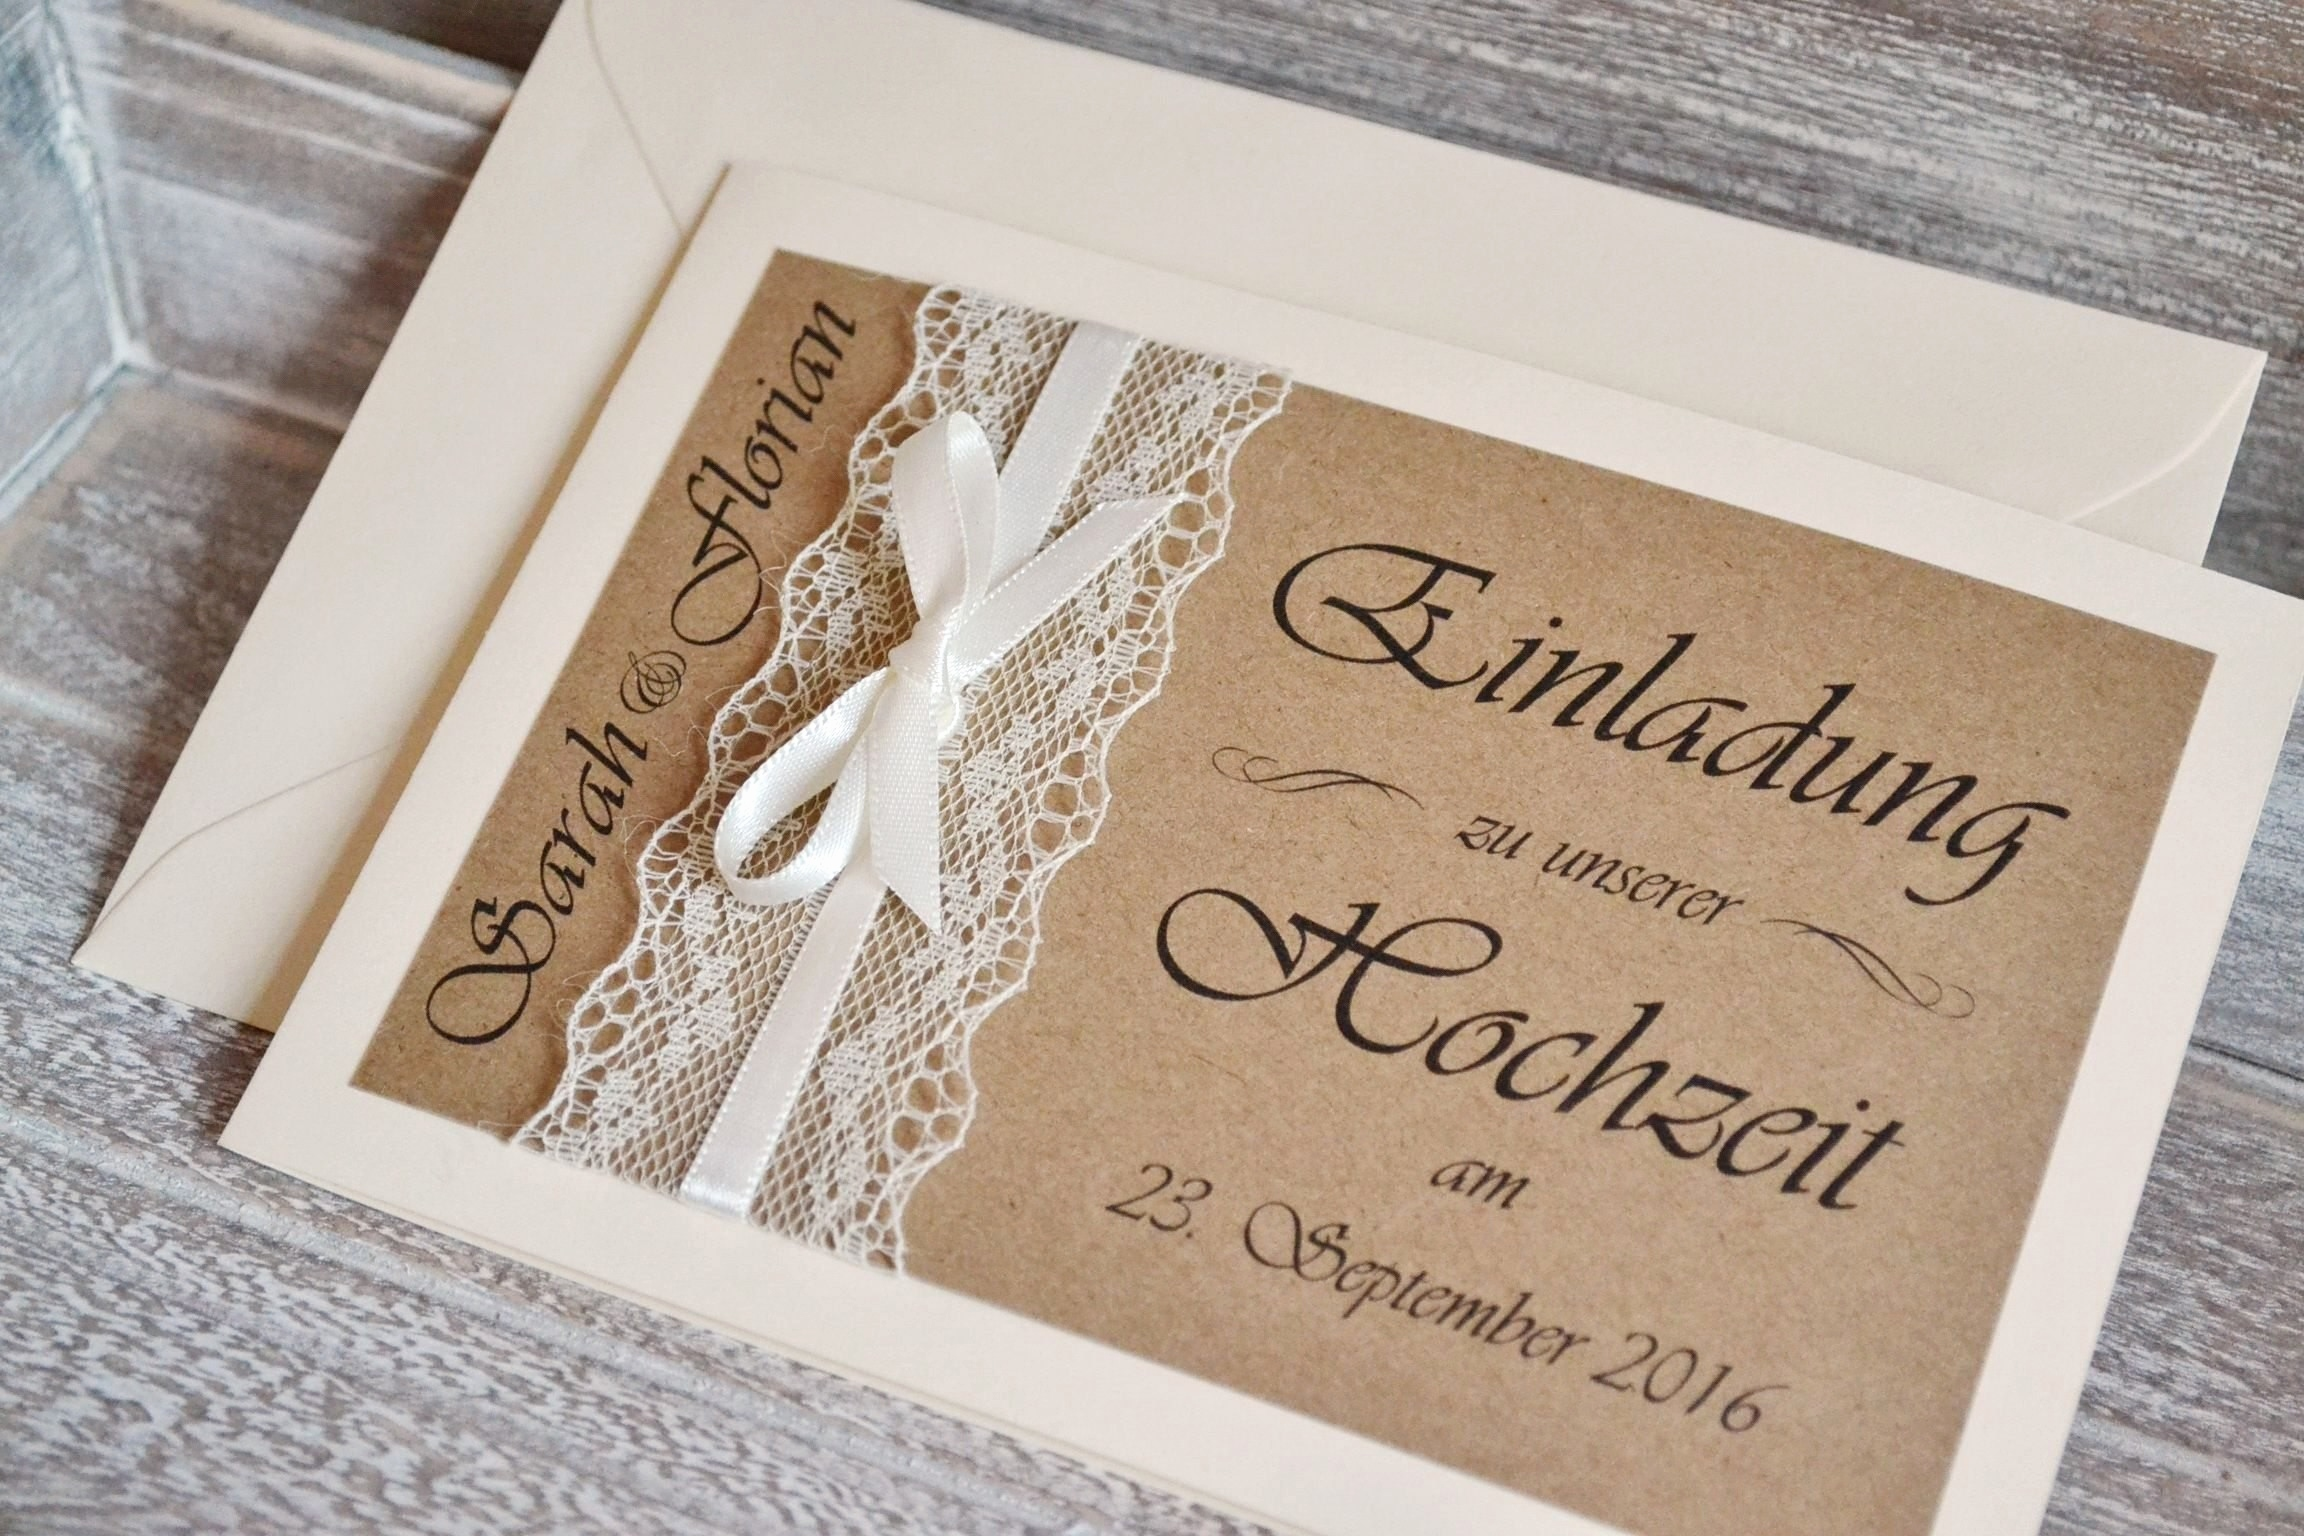 Geburtstagseinladung Vorlage Text Inspirierend Seal and Send Wedding Invitations Vistaprint Inspirational Burgundy